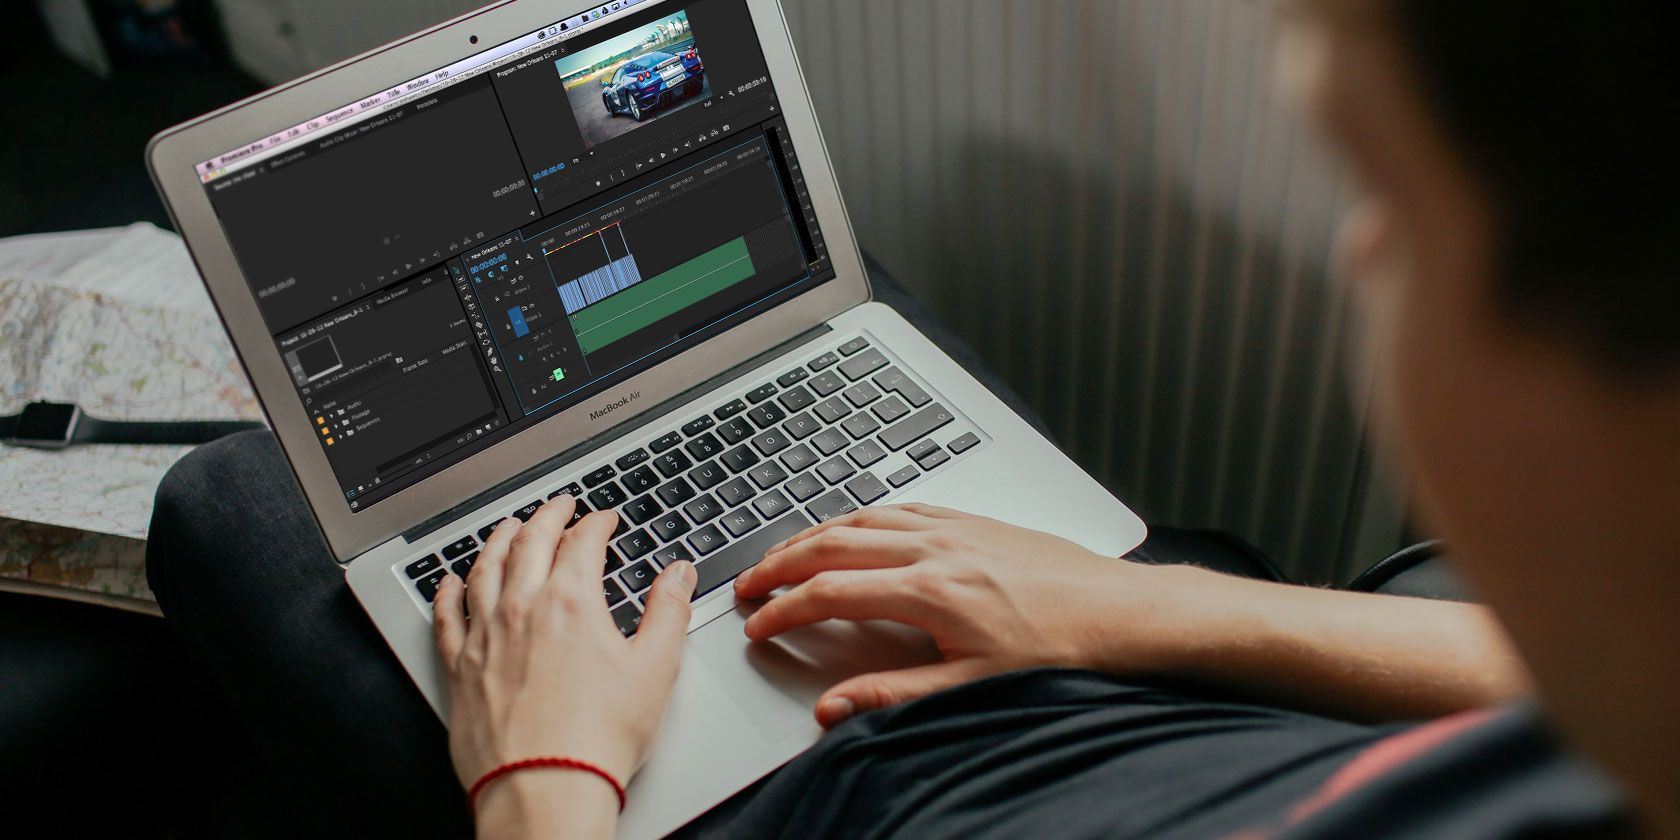 how to share video online for free